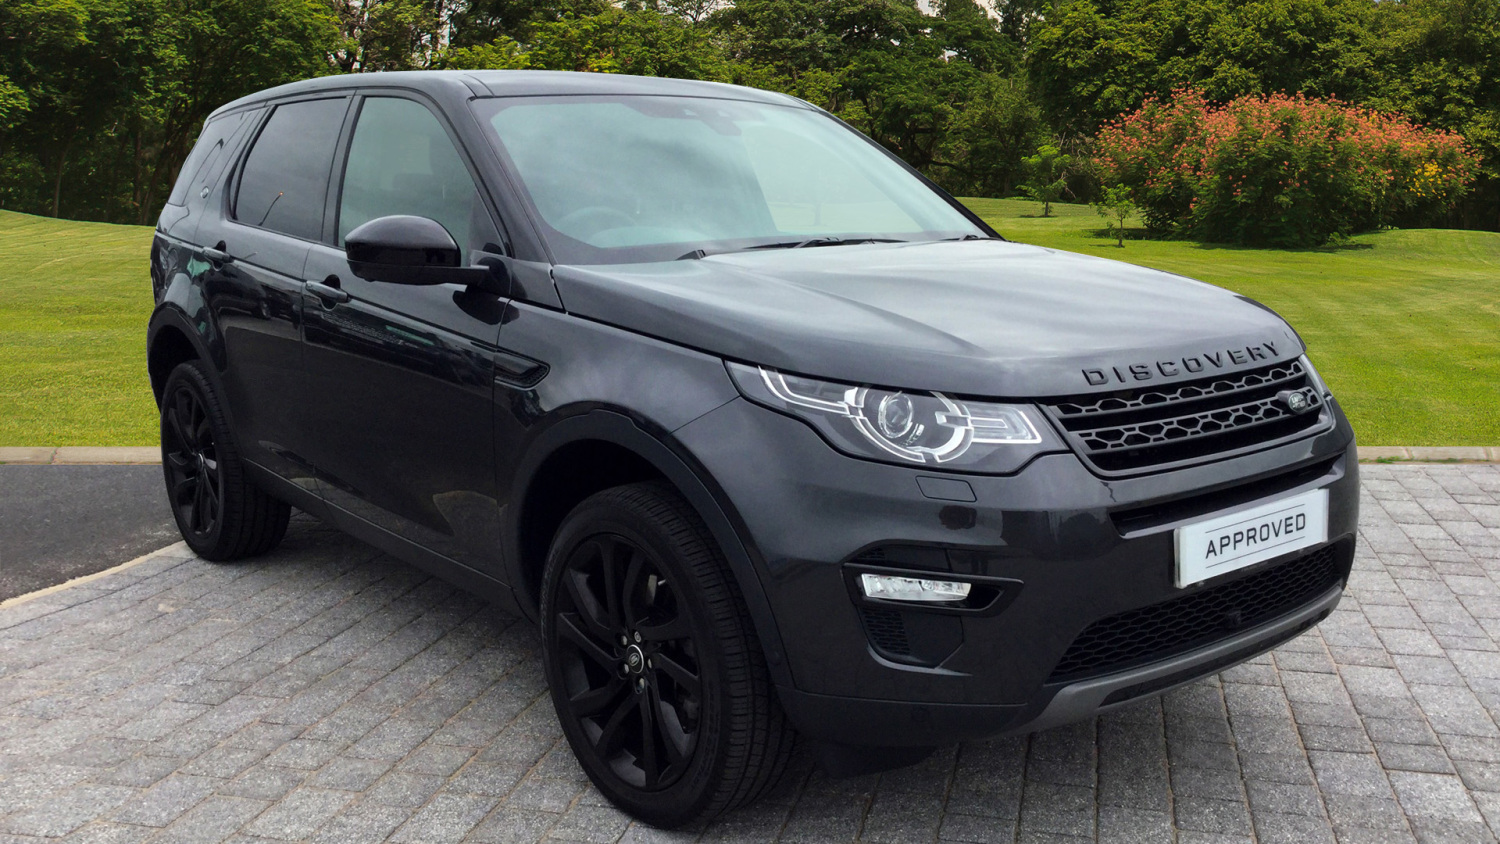 Used Land Rover Discovery Sport 2.0 Sd4 240 Hse Black 5Dr Auto ...